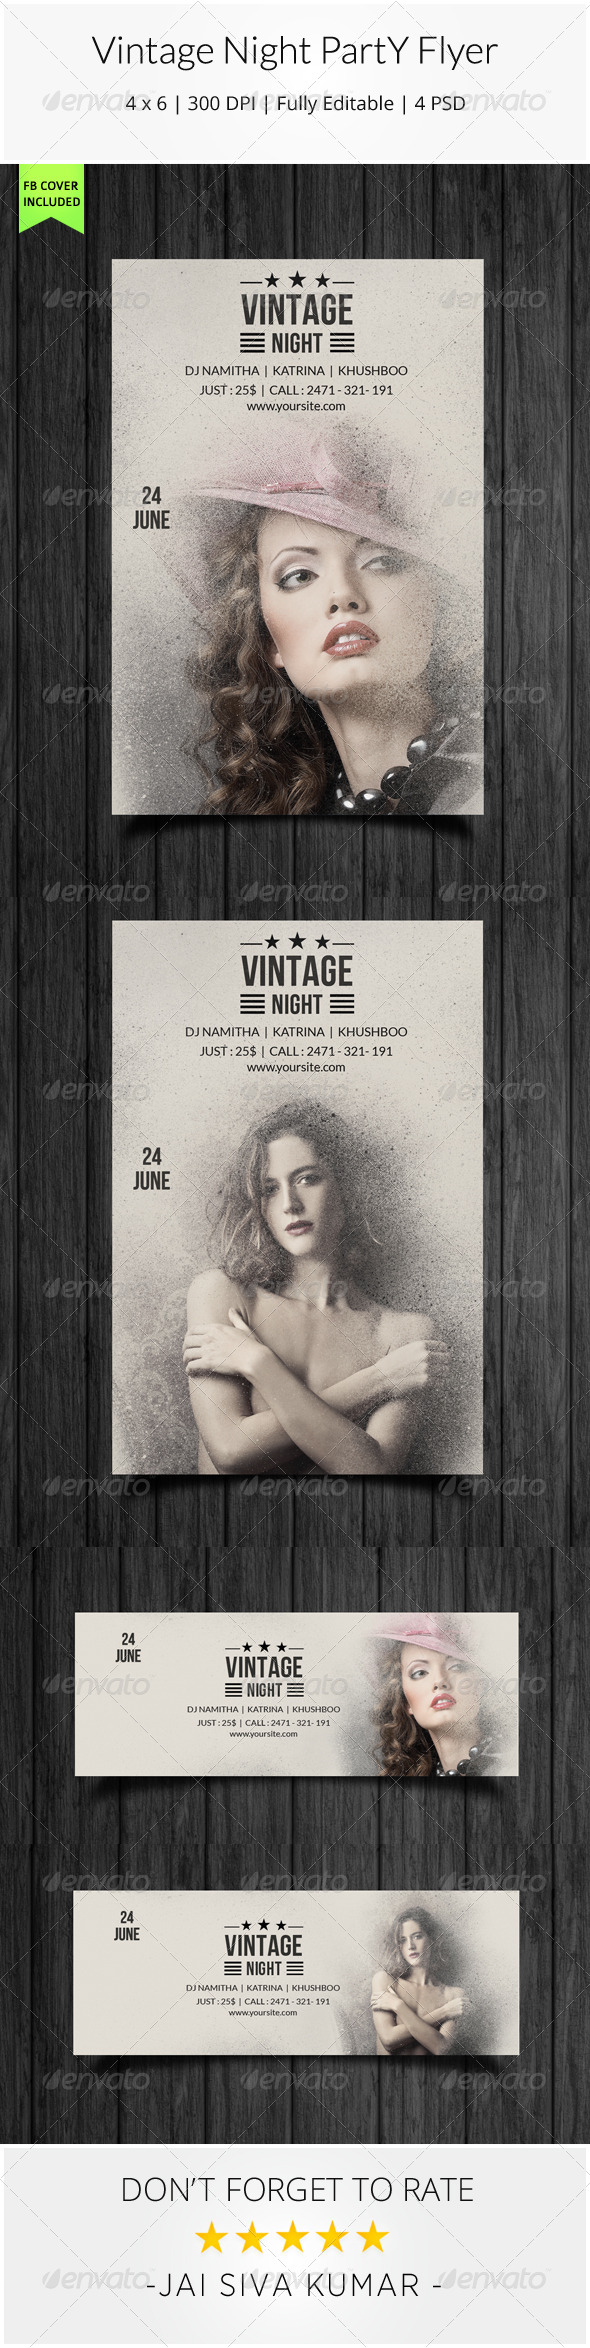 GraphicRiver Vintage Night Party Flyer 7801926